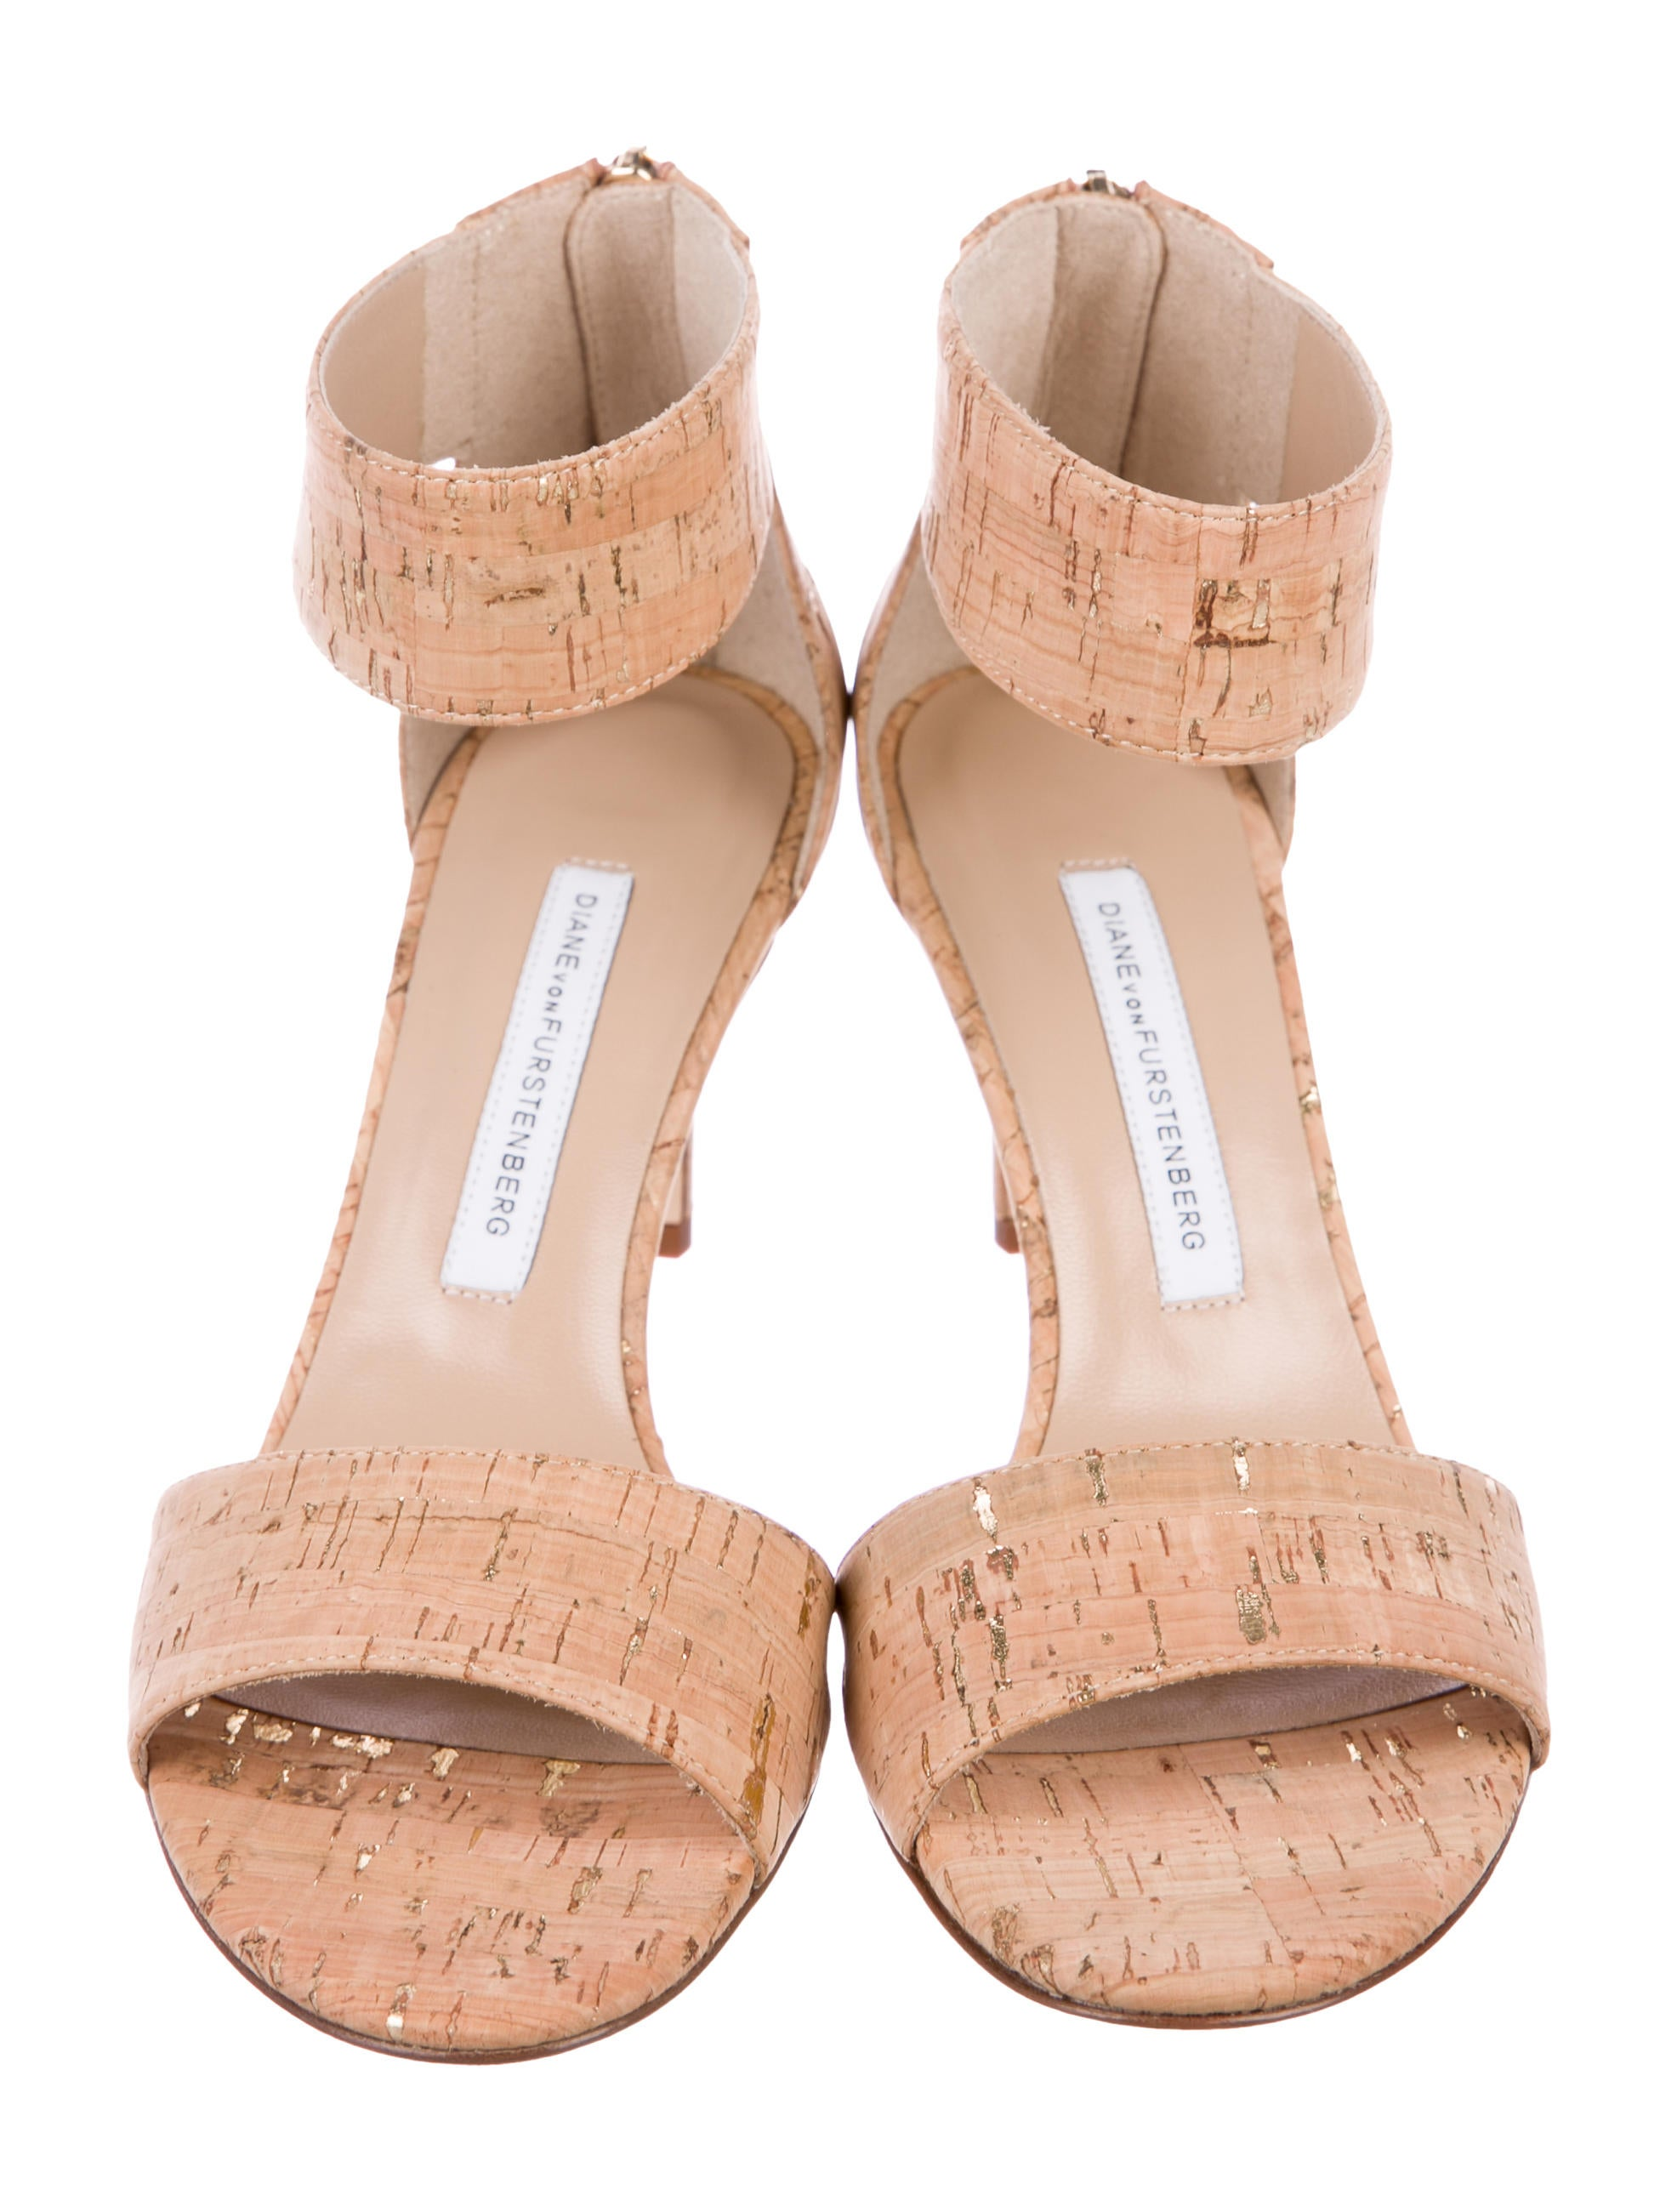 latest for sale Diane von Furstenberg Kinder Cork Sandals w/ Tags with paypal amazing price sale online free shipping 2015 new 2014 new q7aOG